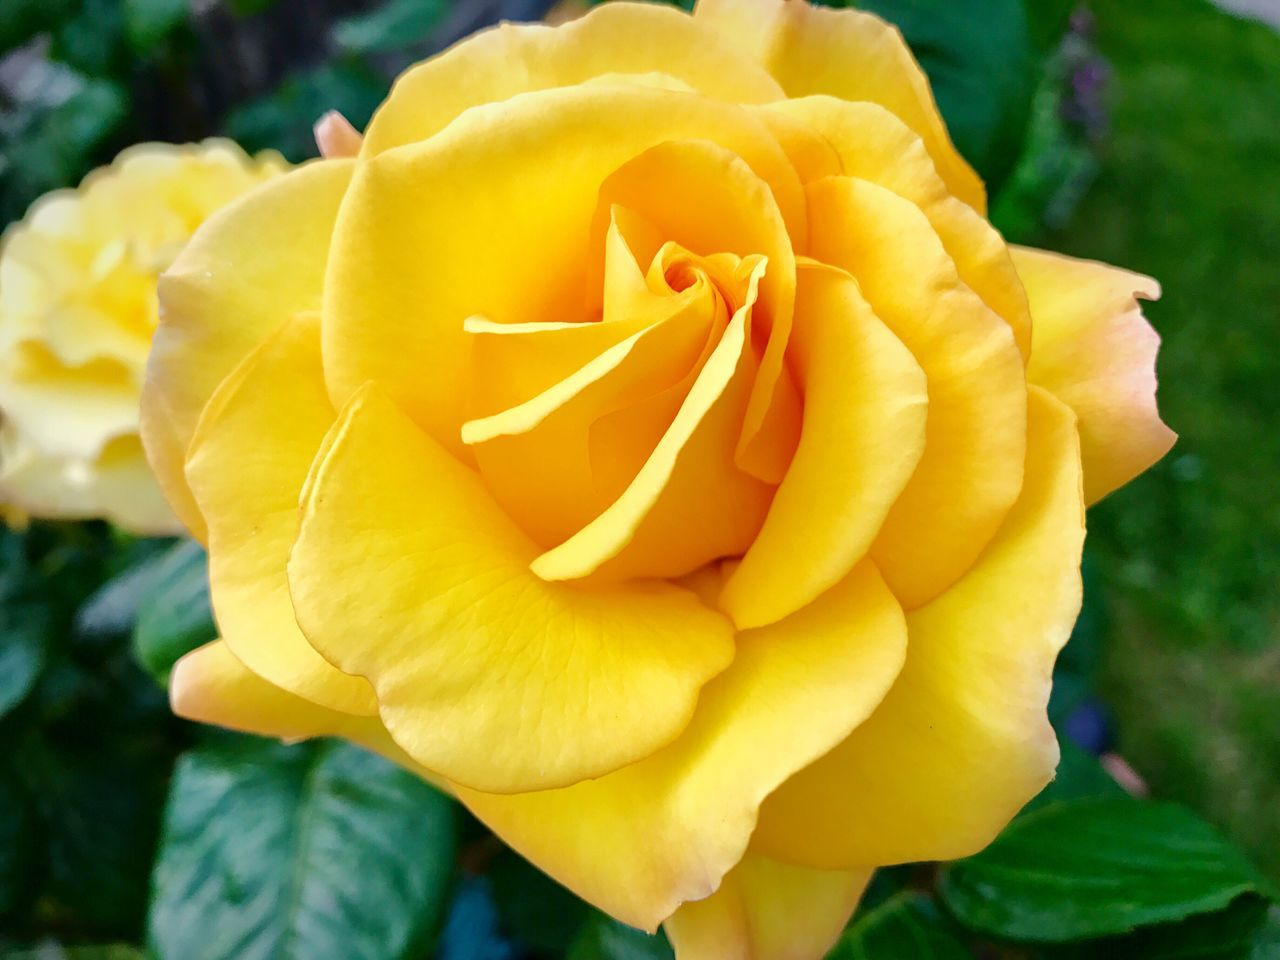 Flower Petal Nature Fragility Beauty In Nature Flower Head Freshness Yellow Plant Close-up Growth Blooming Outdoors No People Rose - Flower Focus On Foreground Day Springtime Roses Yellow Flower Yellow Rose